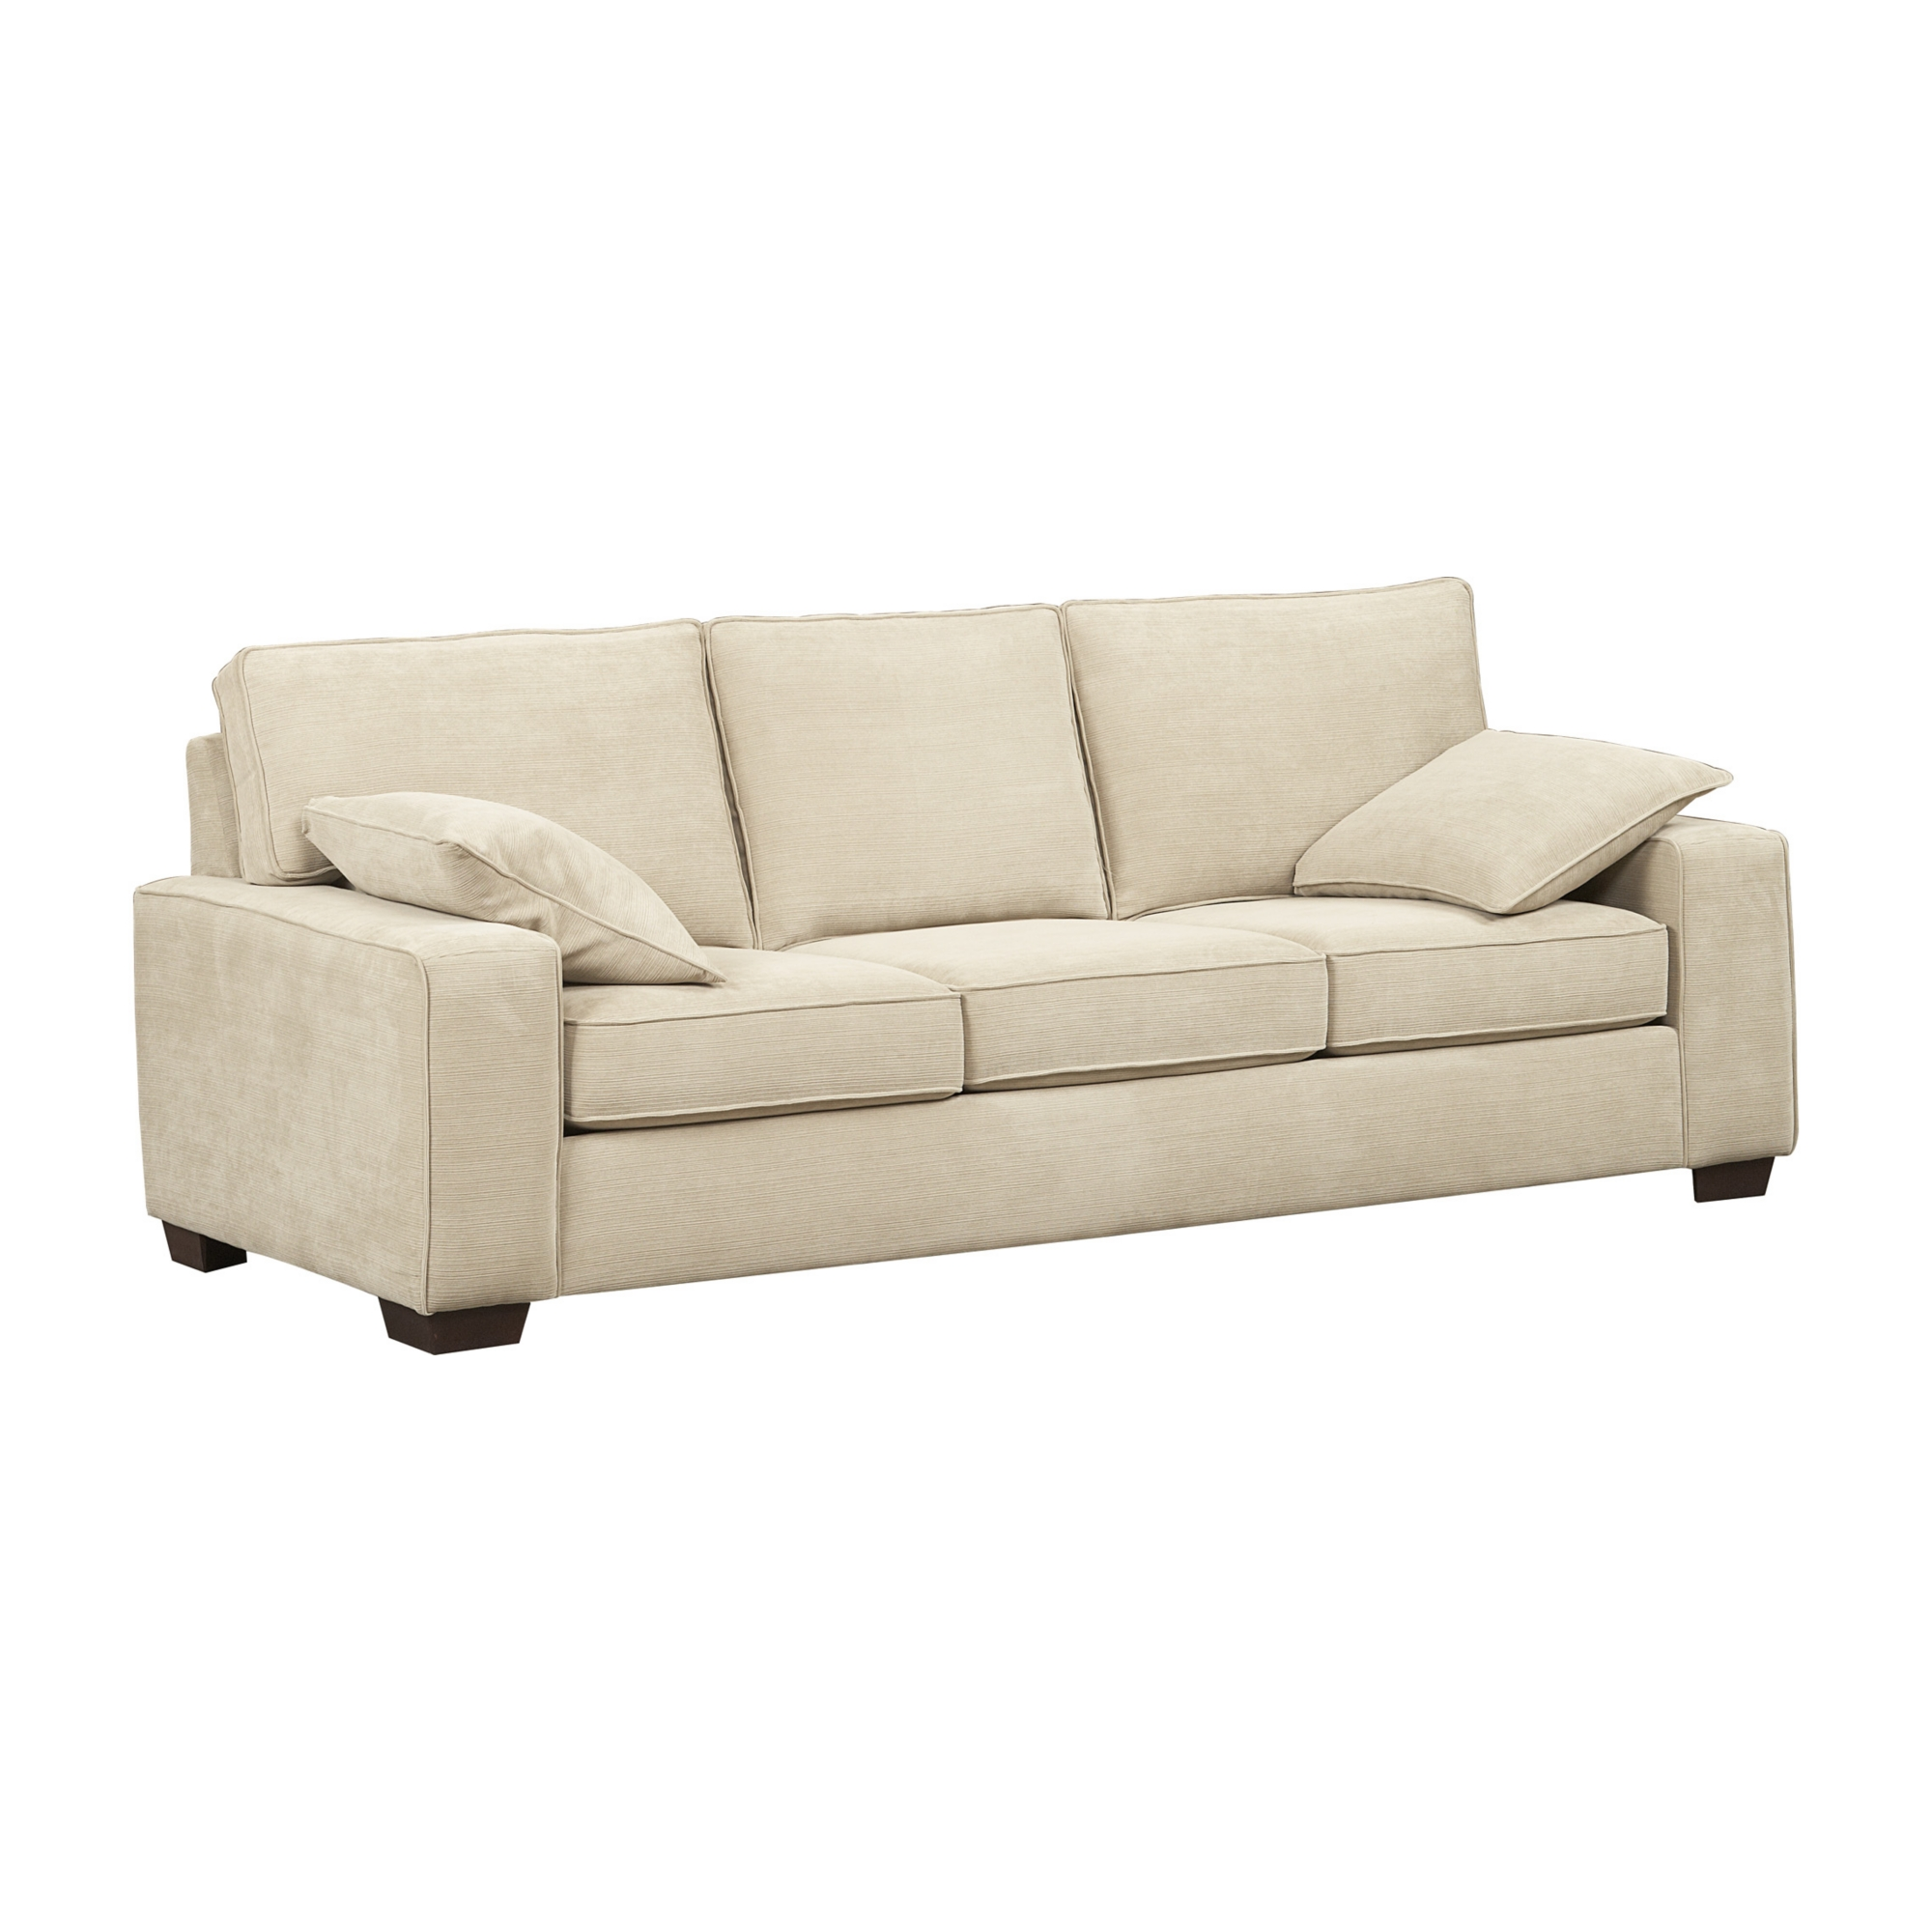 Haverty sofas refil sofa for Liquidation sofa sectionnel